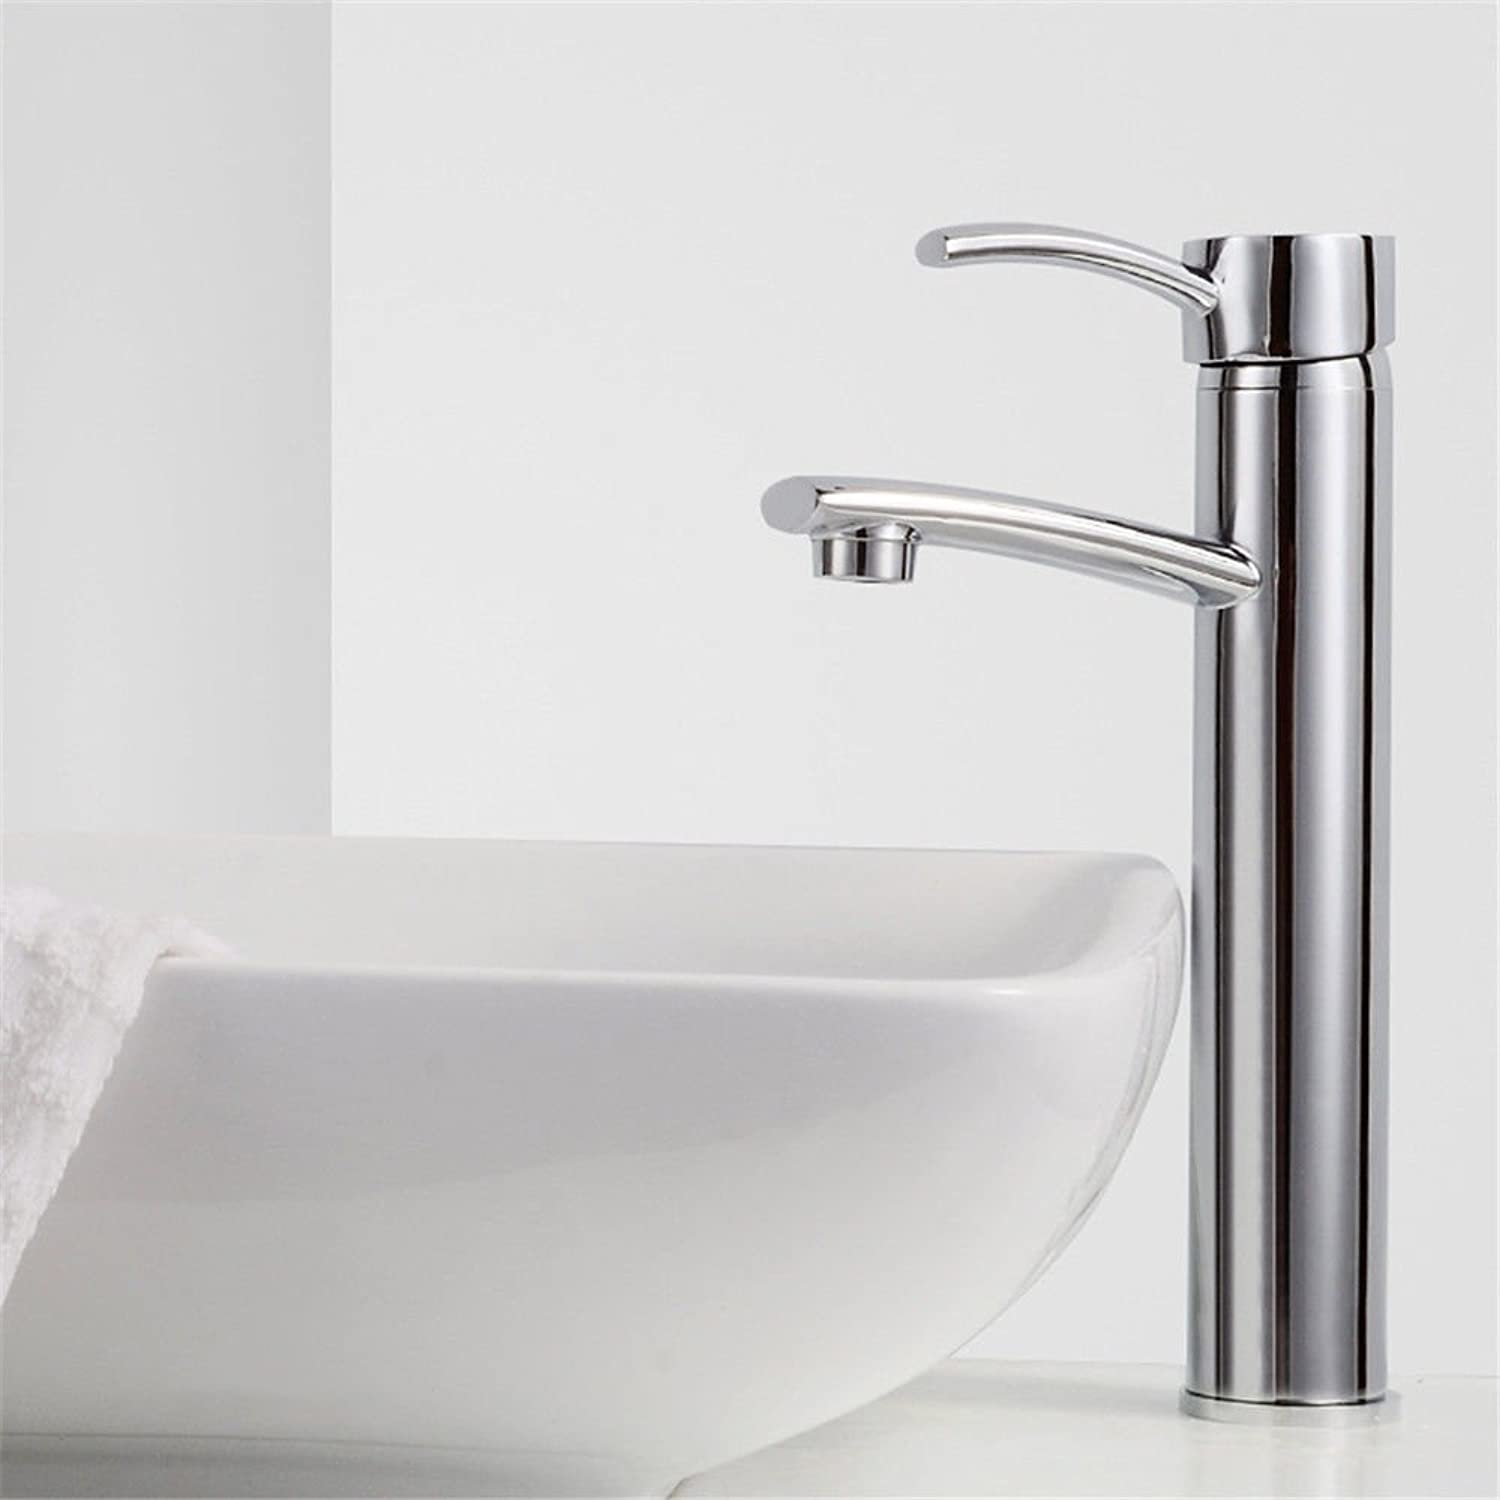 Good quality Antique Basin Sink Mixer Tap Hot and cold single hole basin faucet above counter basin faucet washbasin faucet single-connected quick-opening faucet